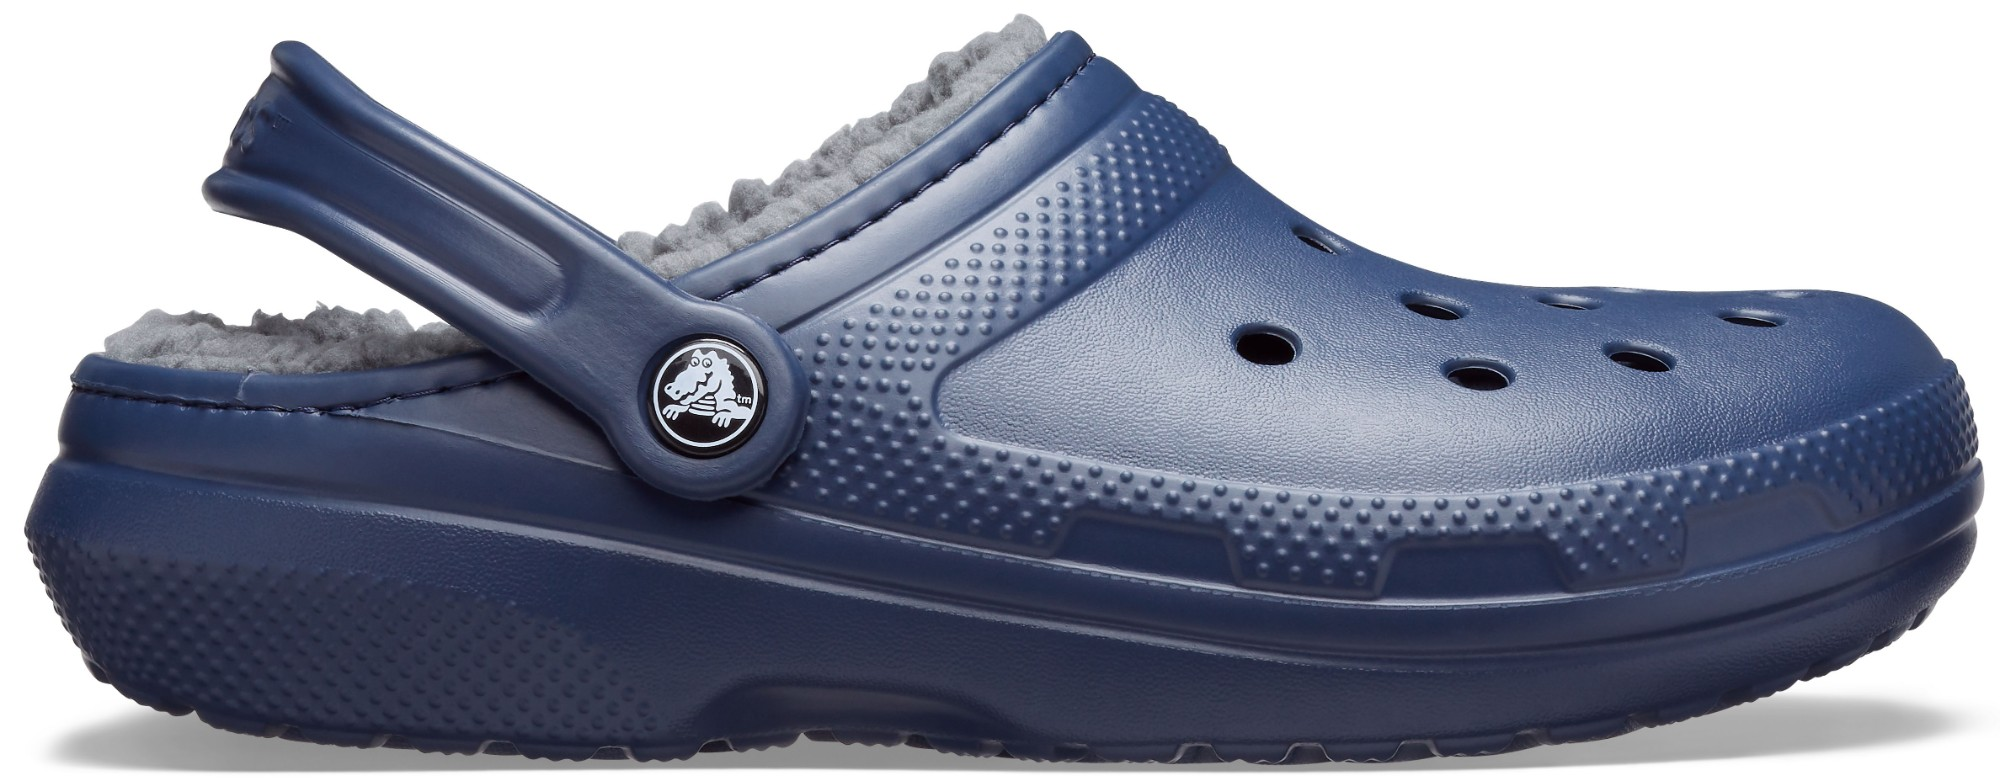 Crocs™ Classic Lined Clog Navy/Charcoal 36,5